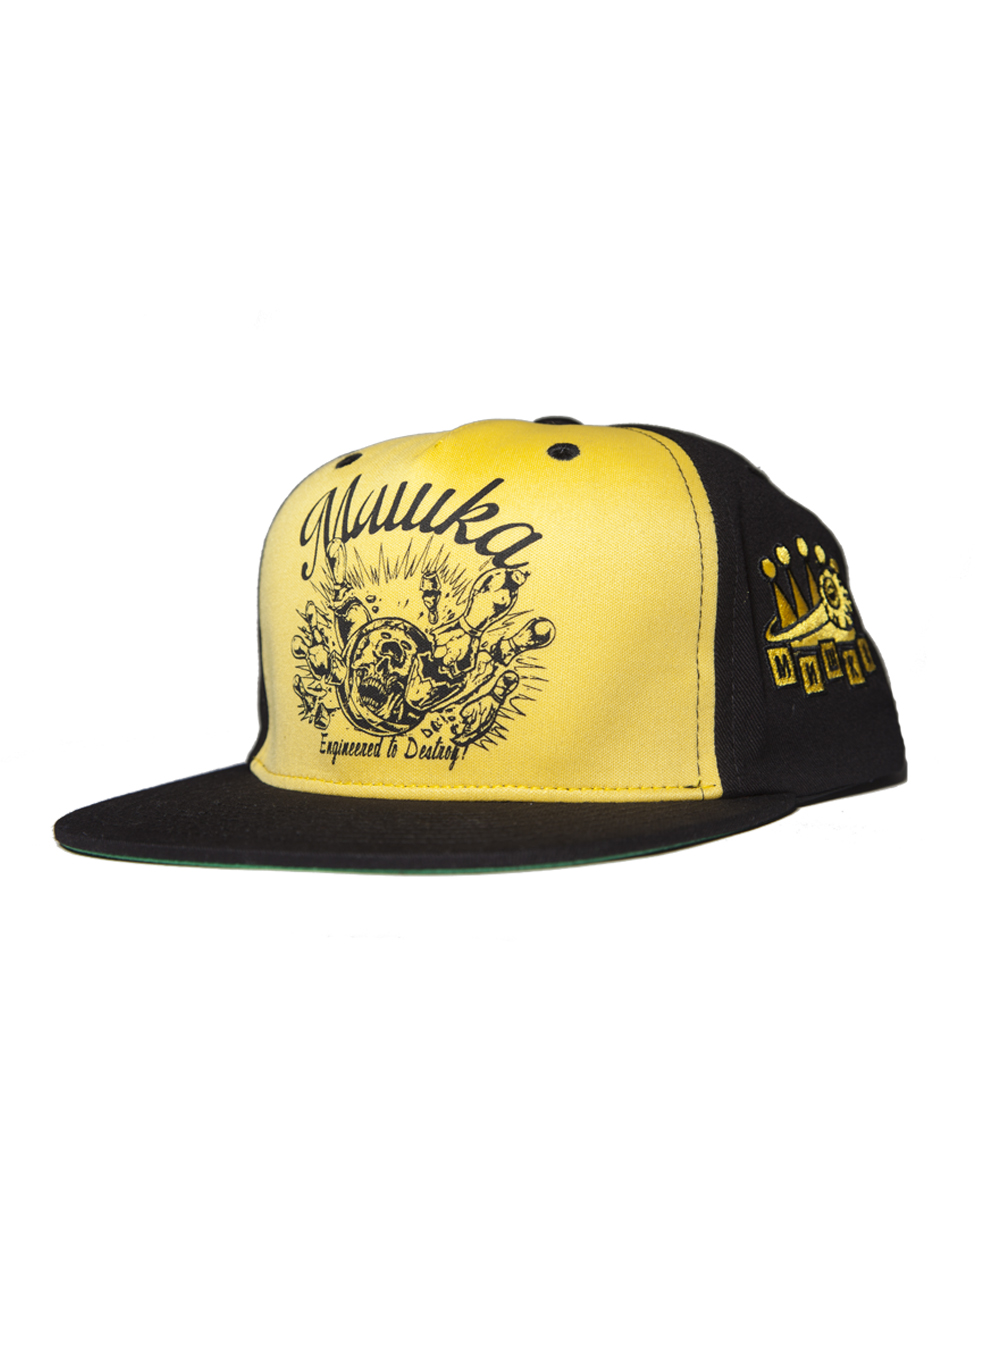 Lamour King Pin Snapback